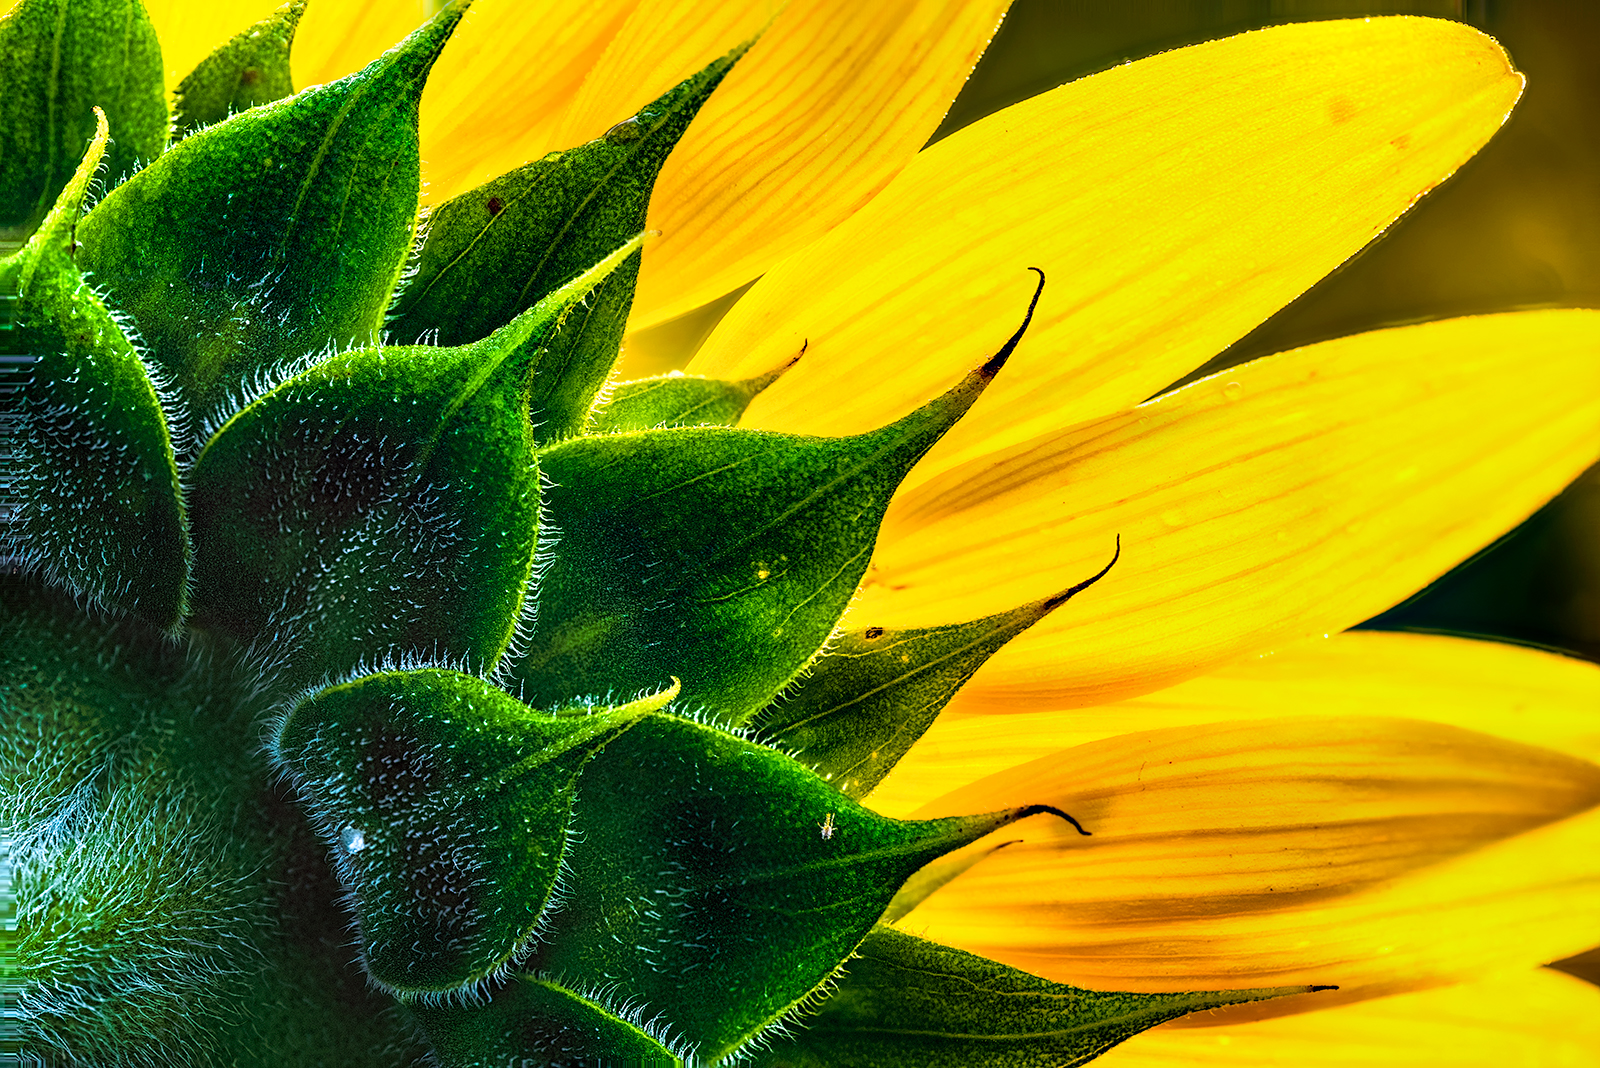 Sunflower from the Back. McKee-Beshers Wildlife Management Area